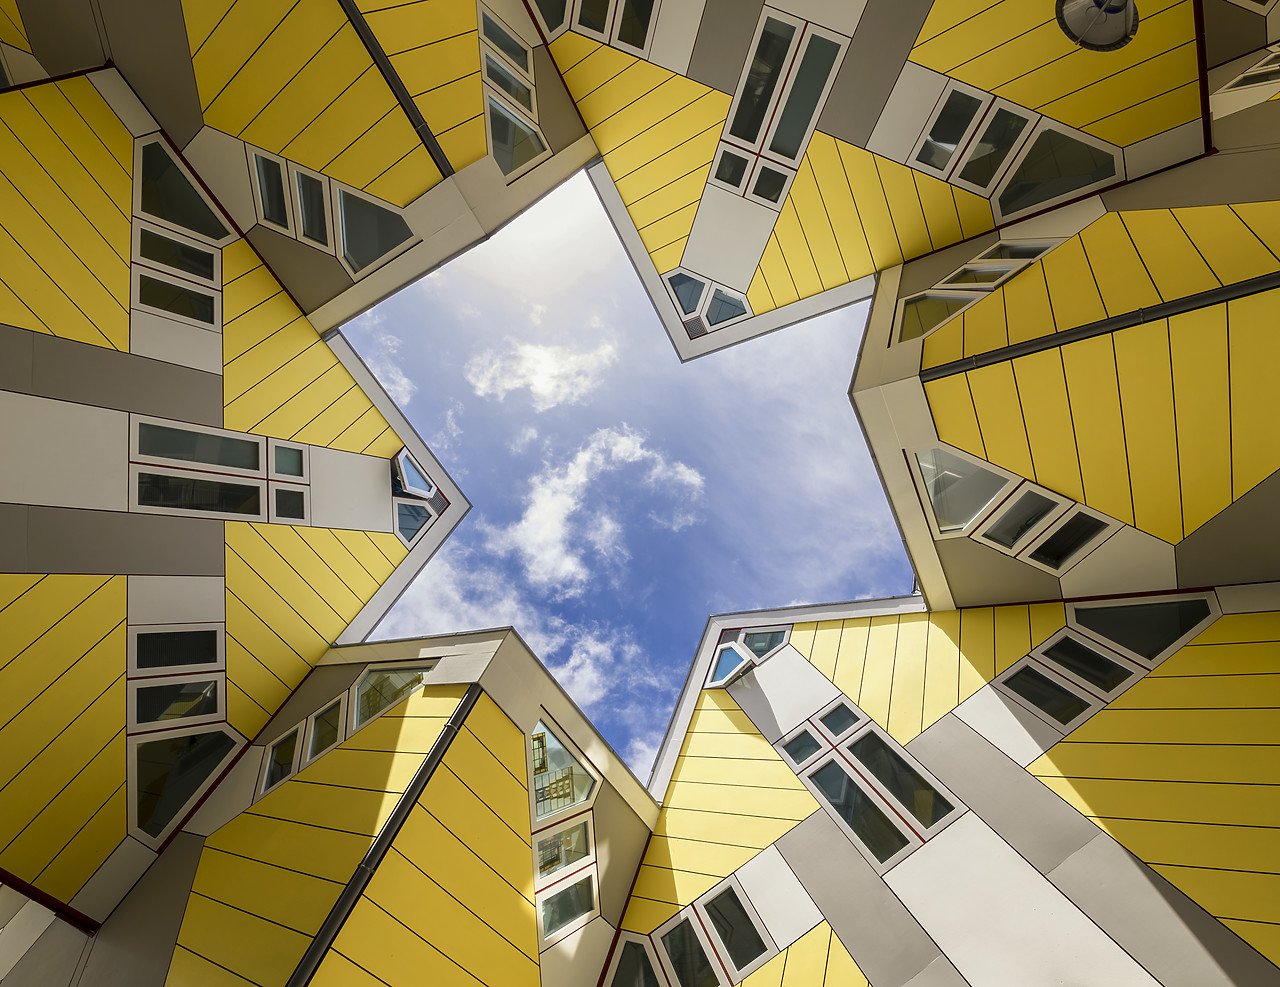 #180333-1 - Cube Apartments (Architect: Piet Blom), Rotterdam, Holland, Netherlands